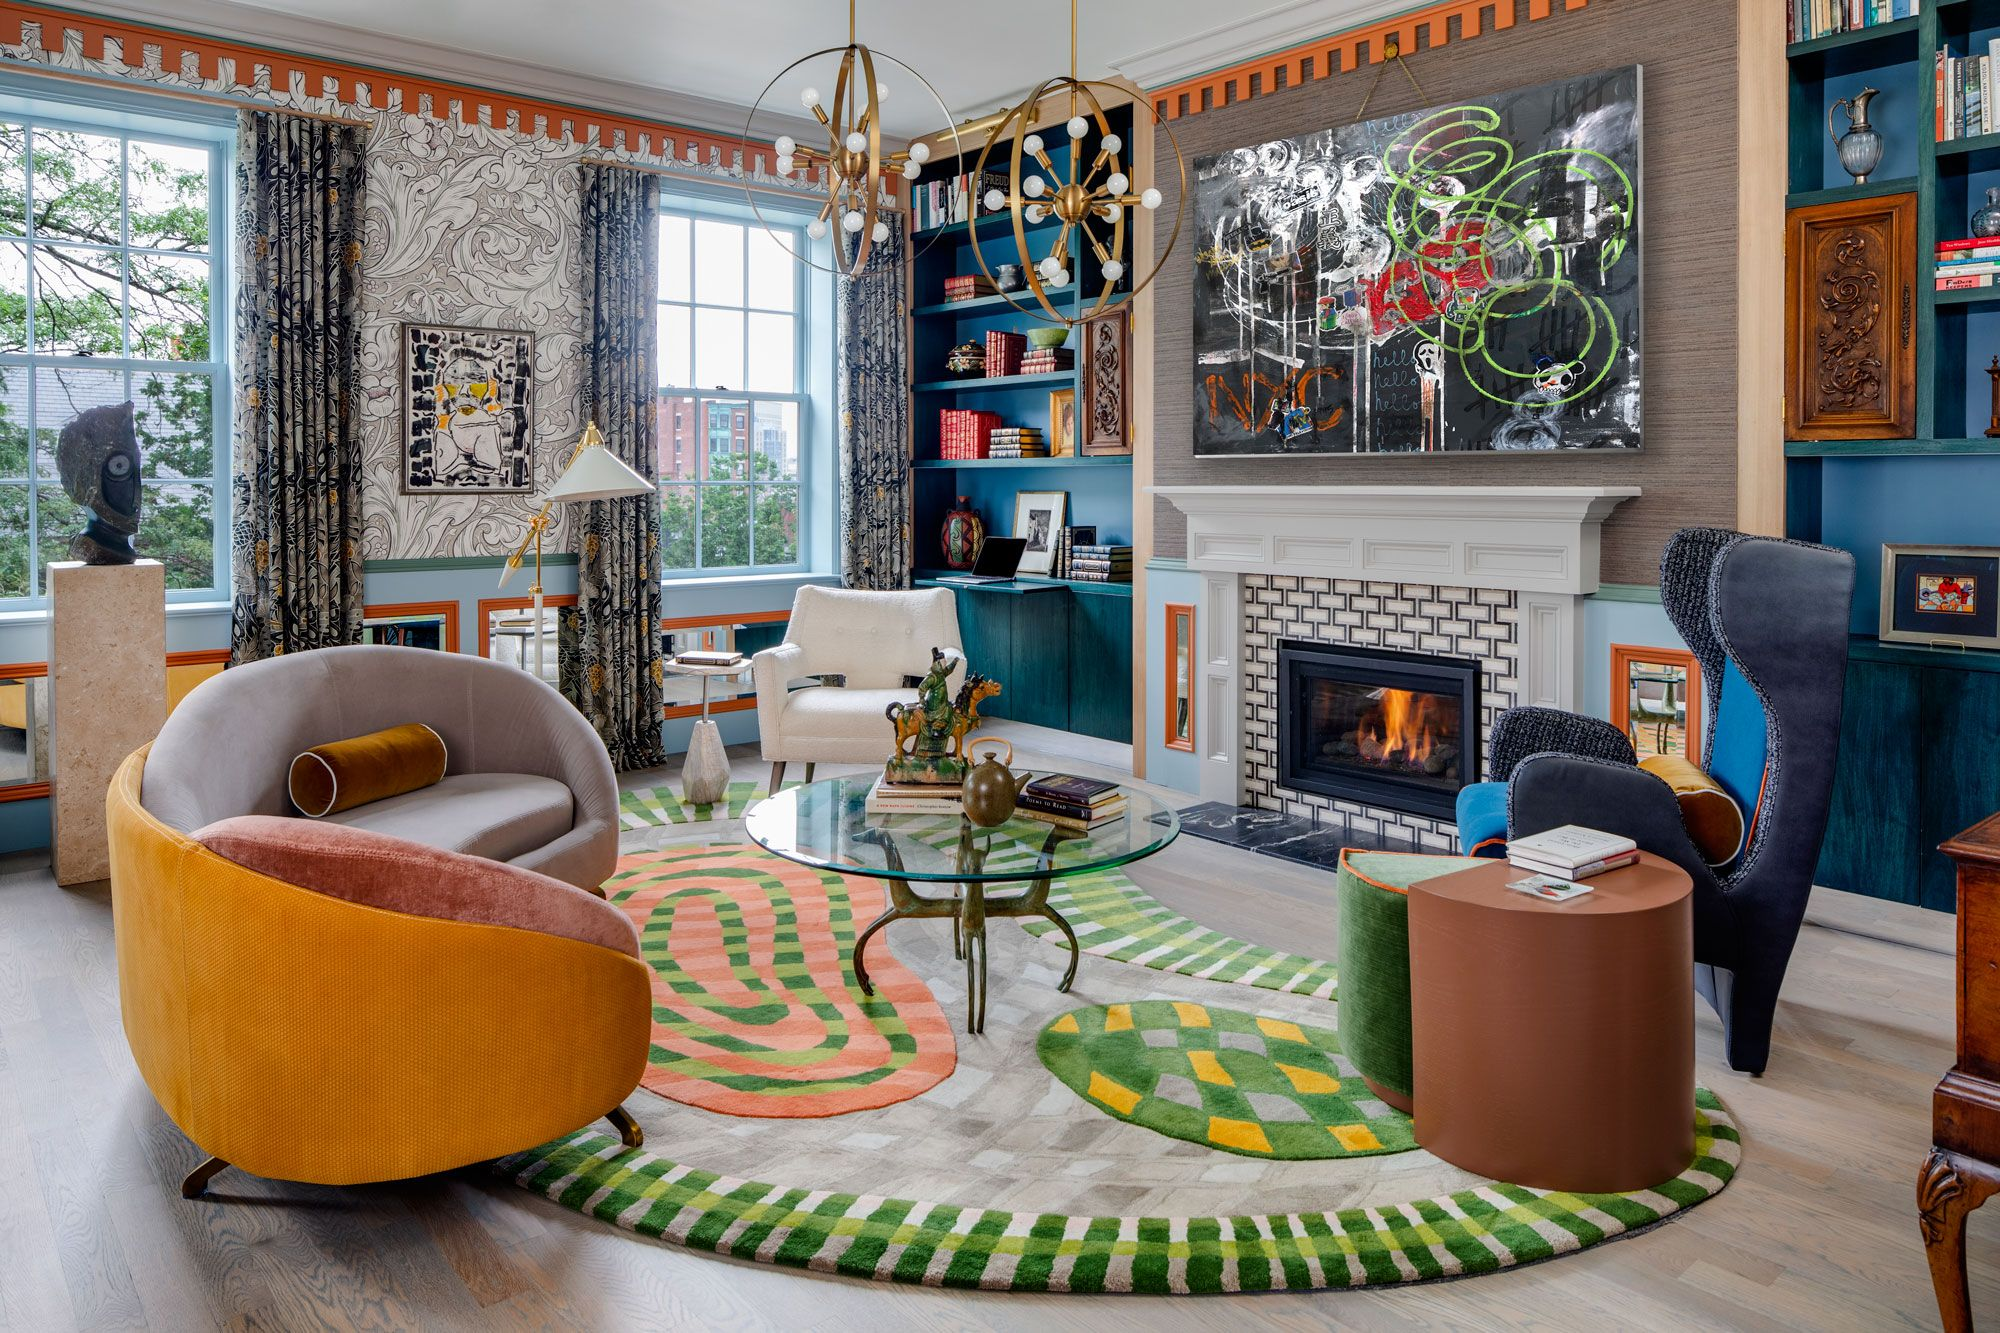 This Crazy, Bold Apartment Is Actually Full of Historic Details